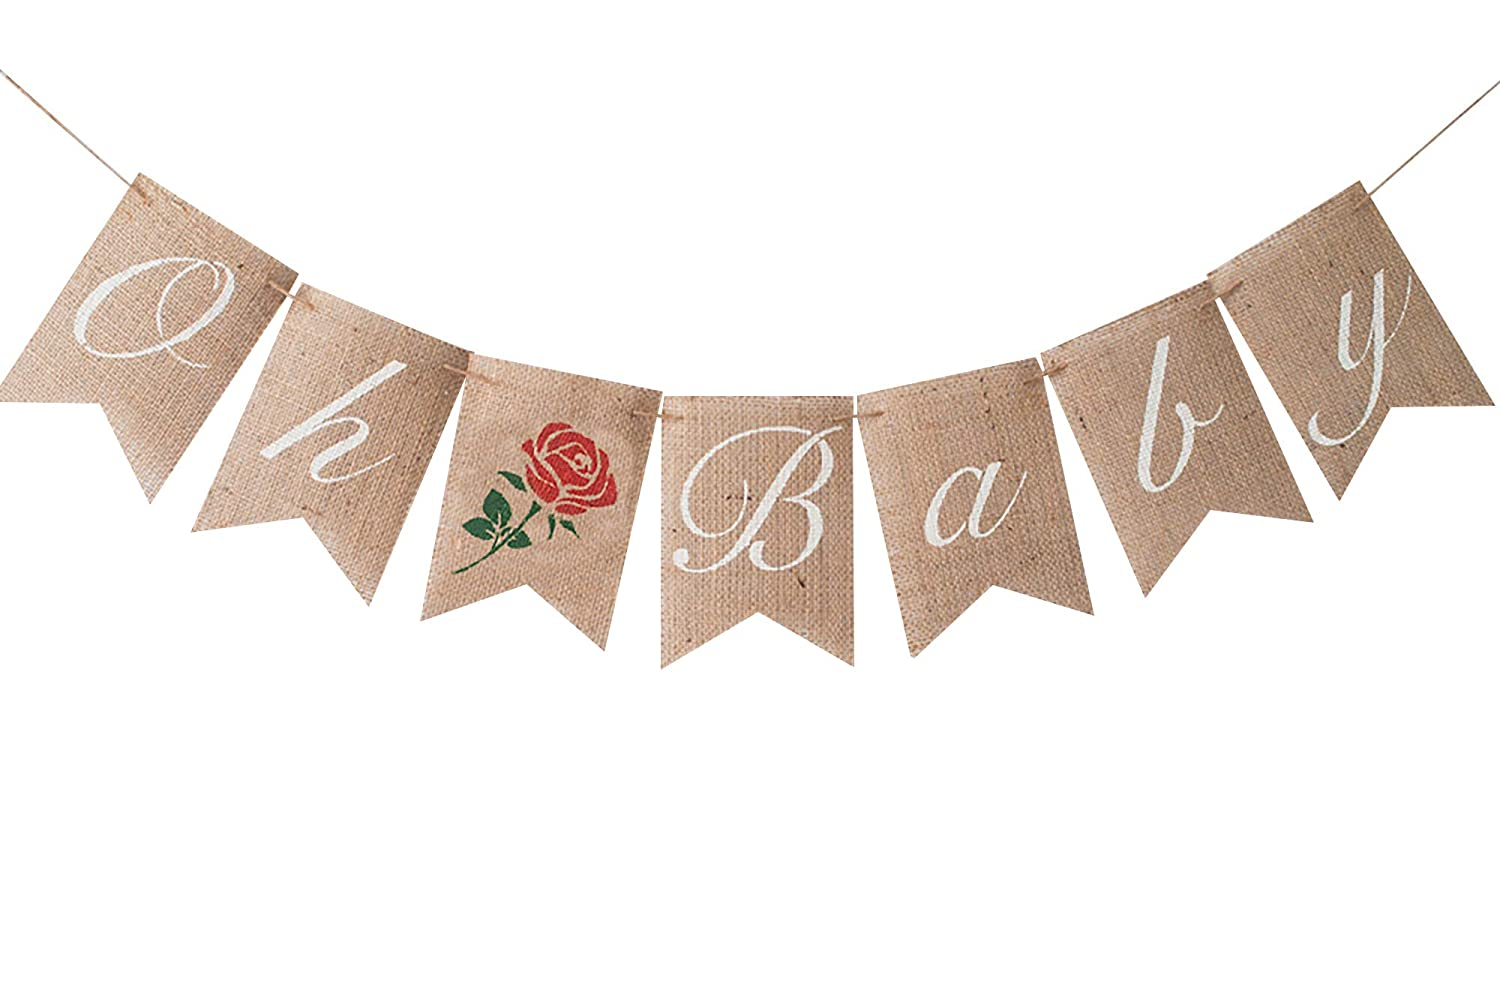 Rose Oh Baby famous Banner Shower Many popular brands or Gender Party Decor Reveal